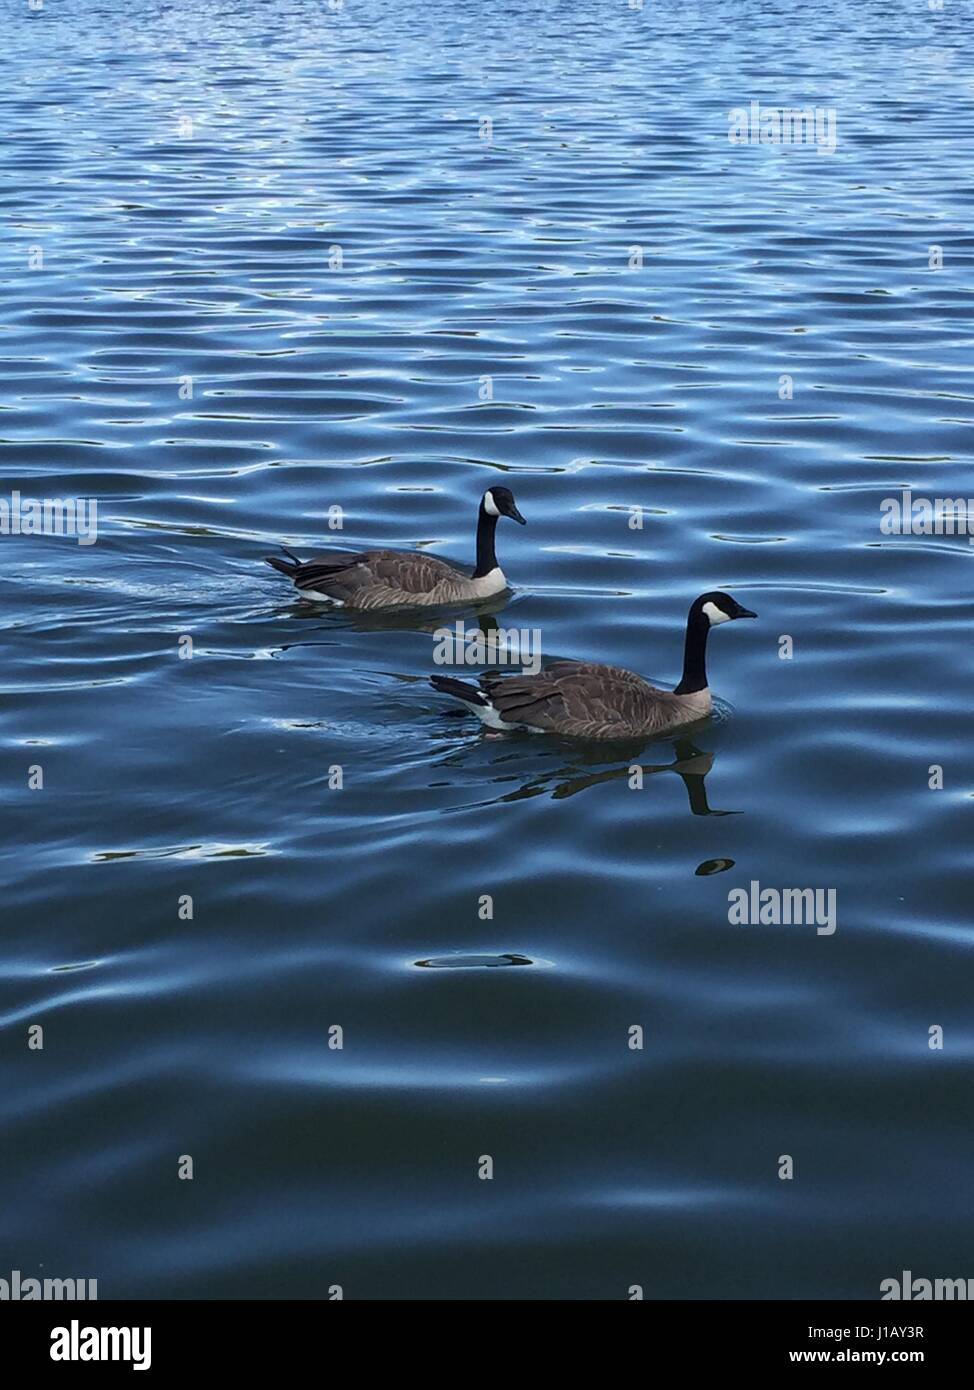 Oh Canada Goose - Stock Image